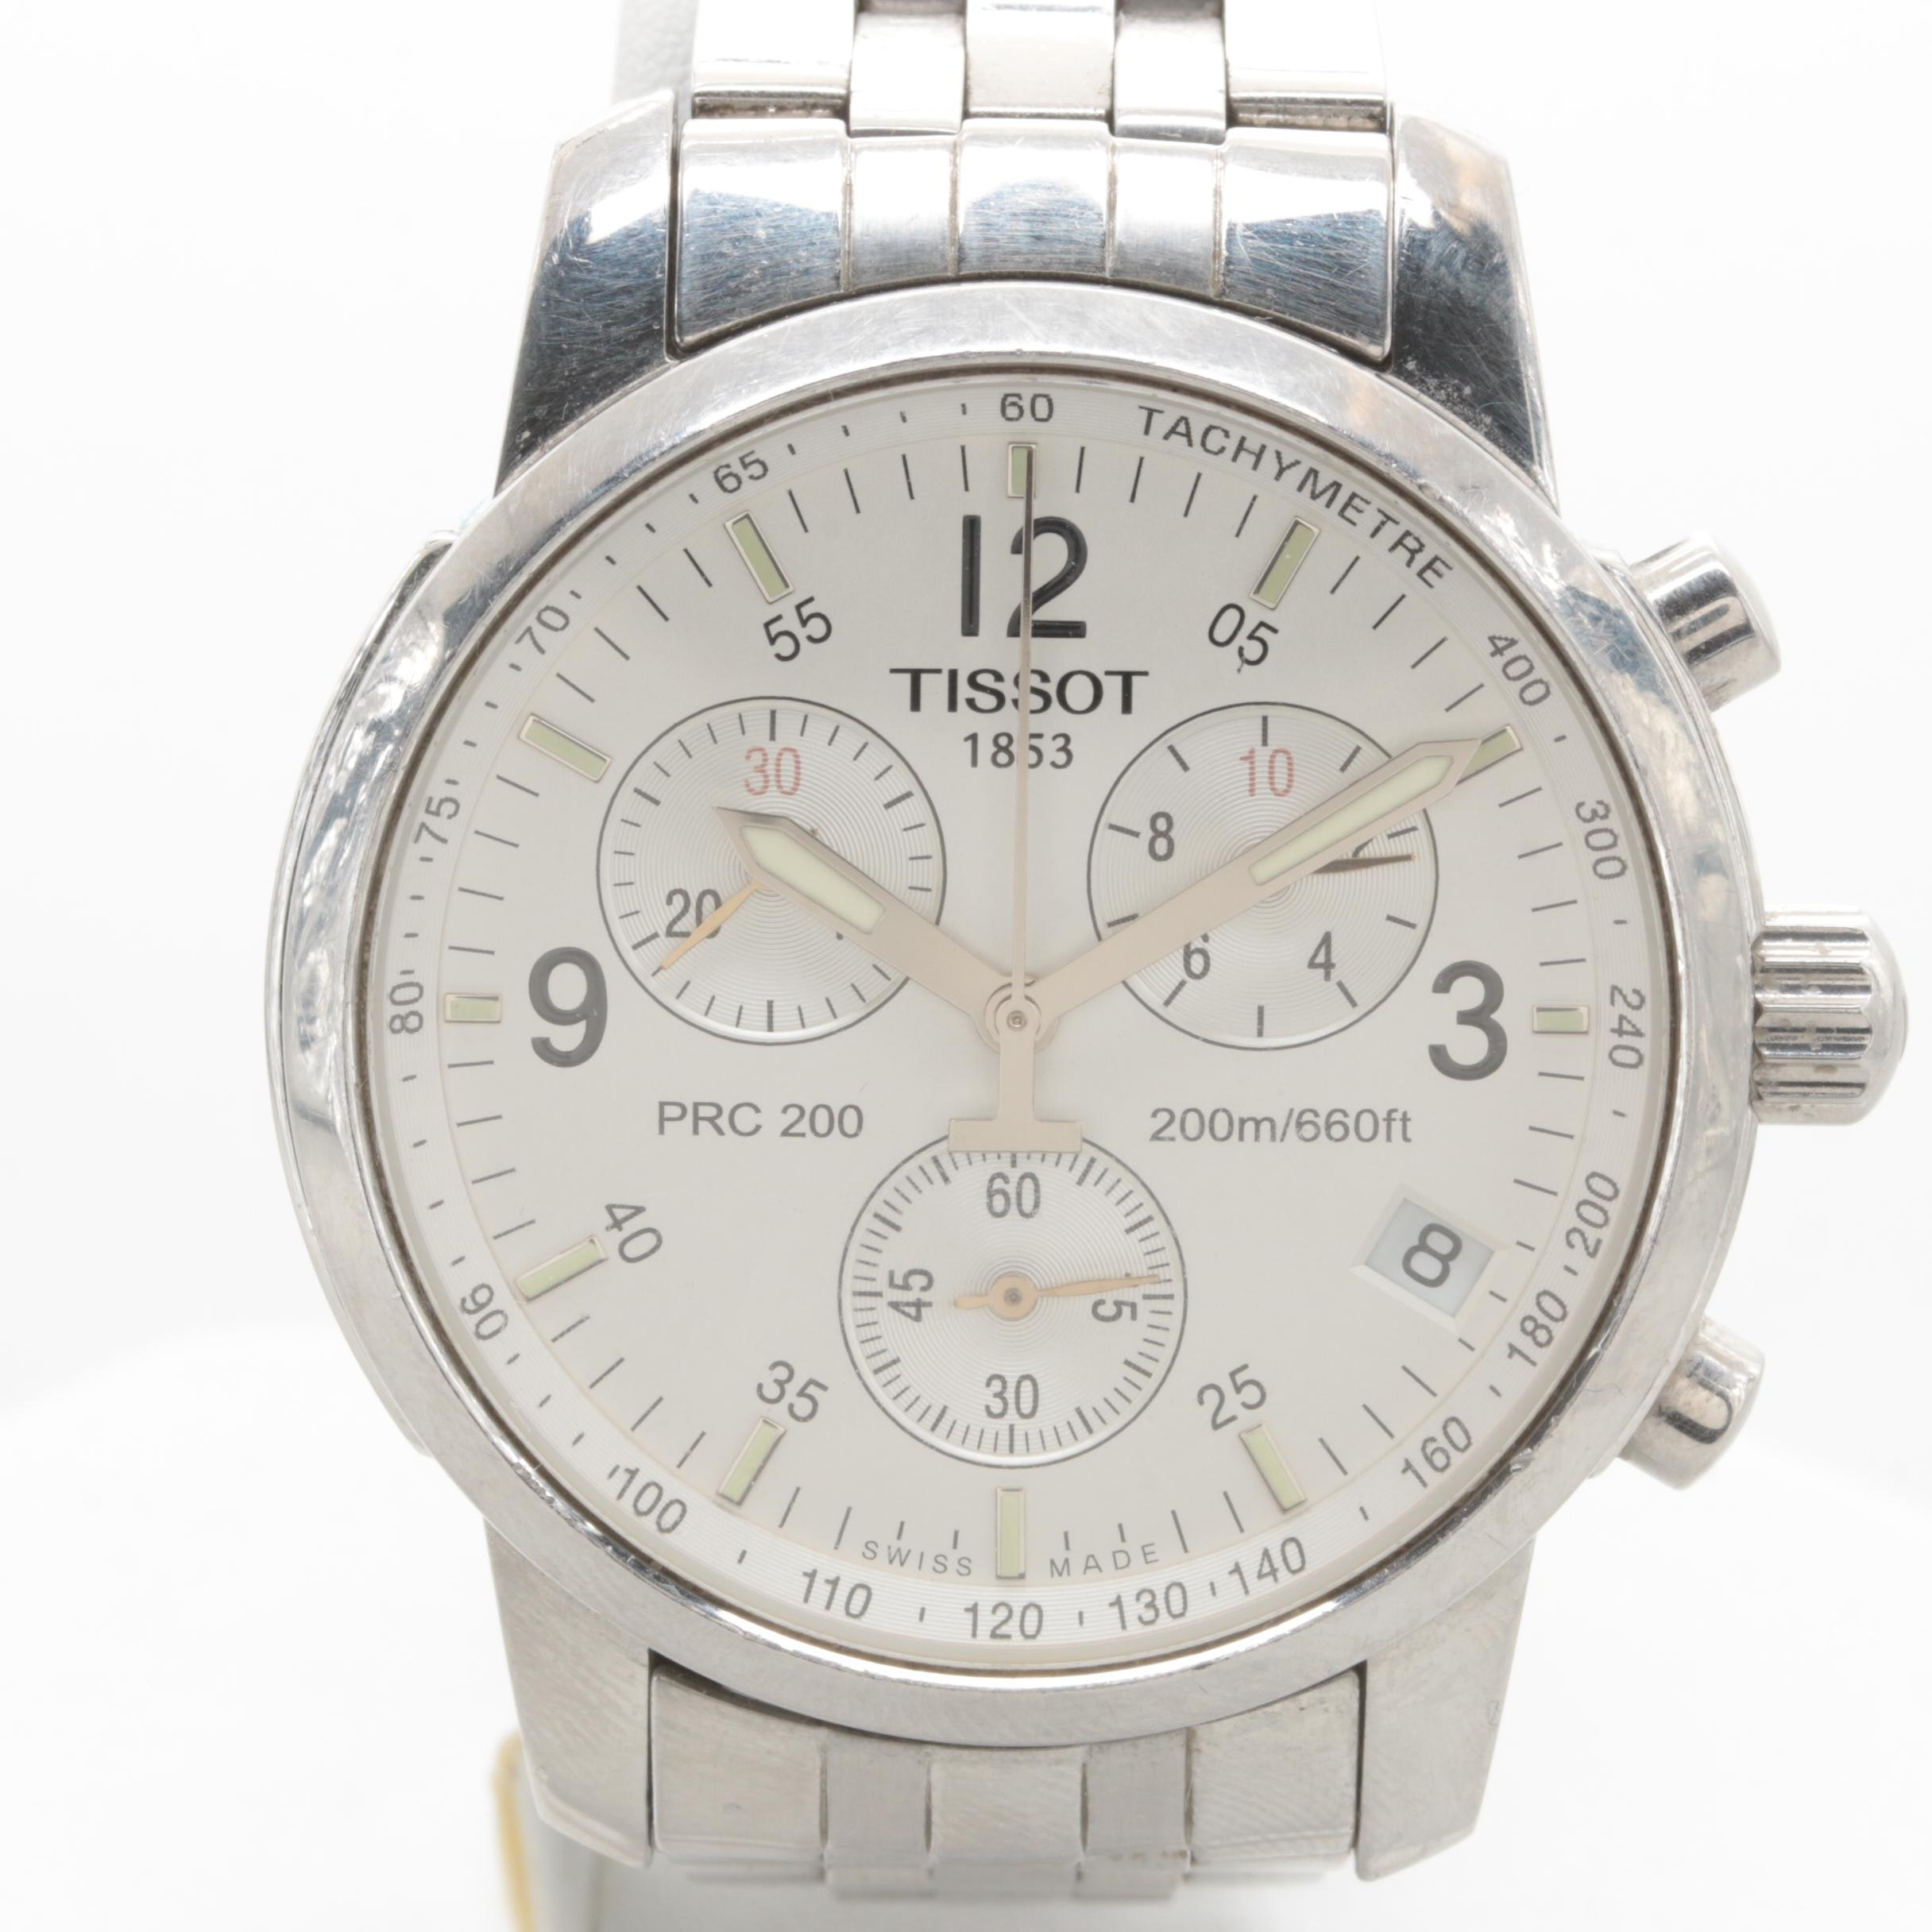 Tissot Stainless Steel Wristwatch with Date Window